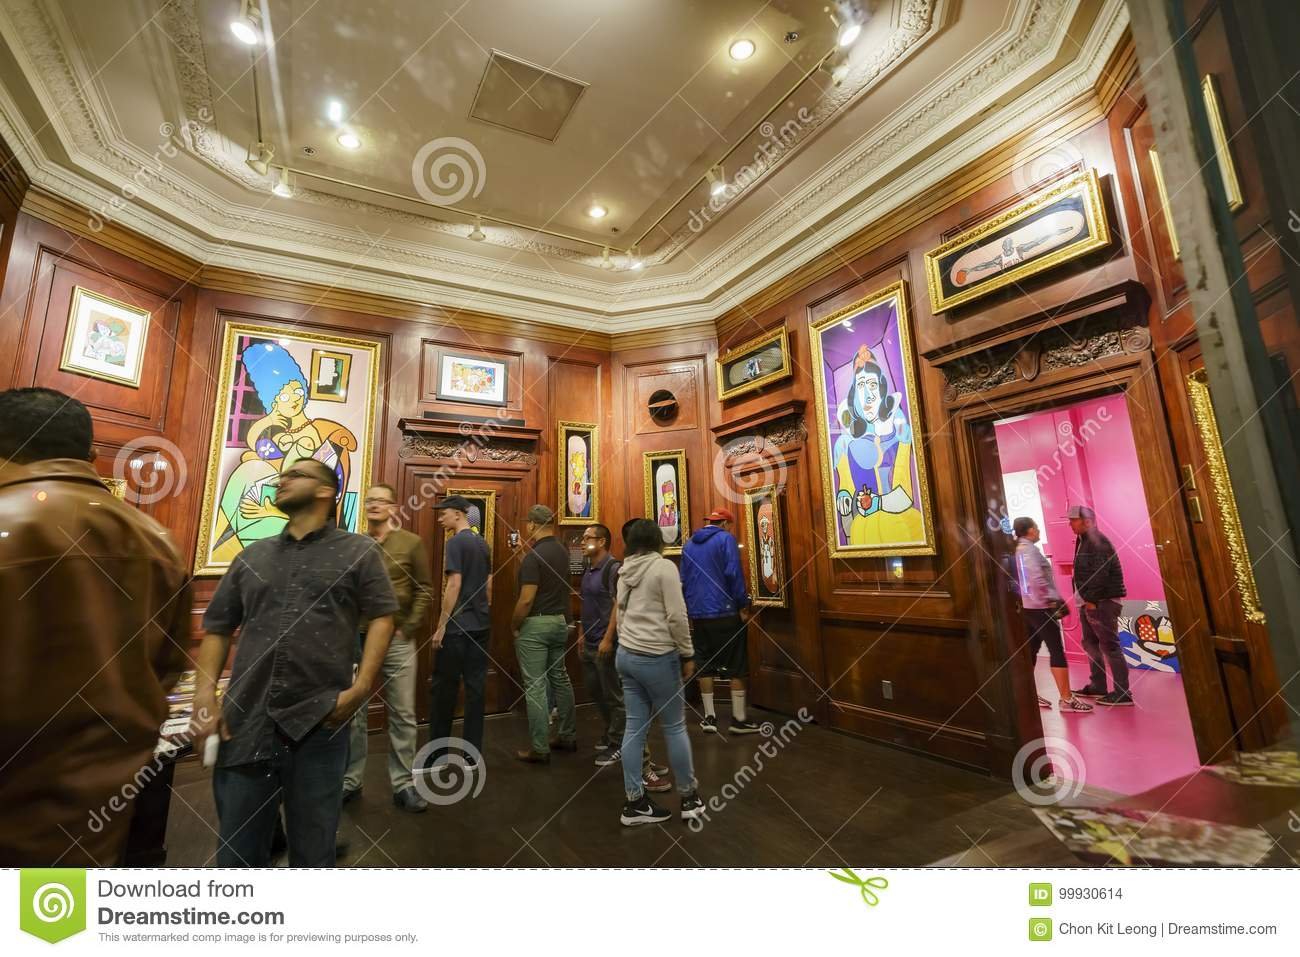 Downtown Los Angeles Art Walk Editorial Stock Image - Image of